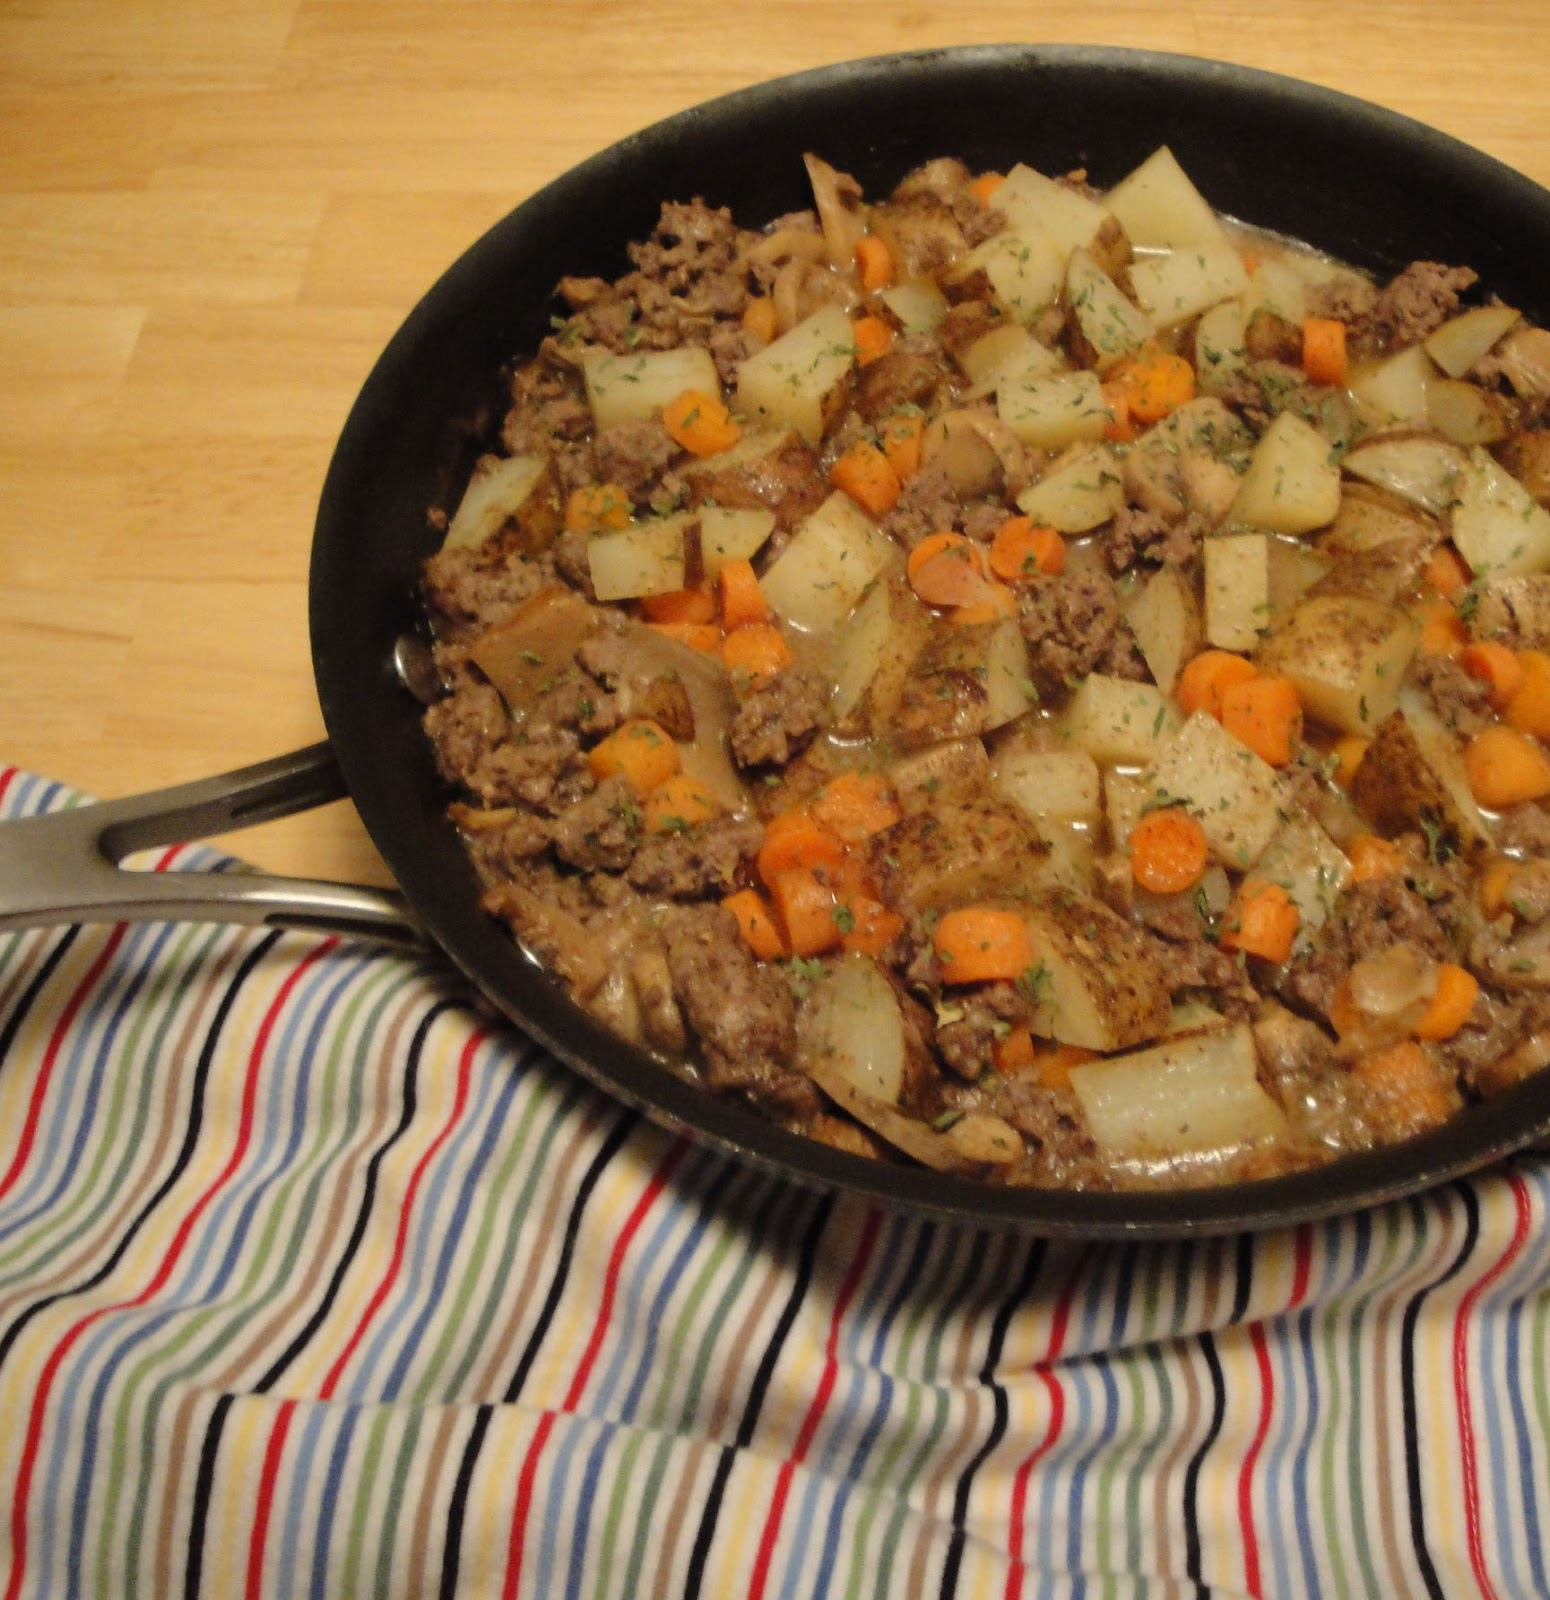 Christine's Pantry: 11 Easy Skillet Meals